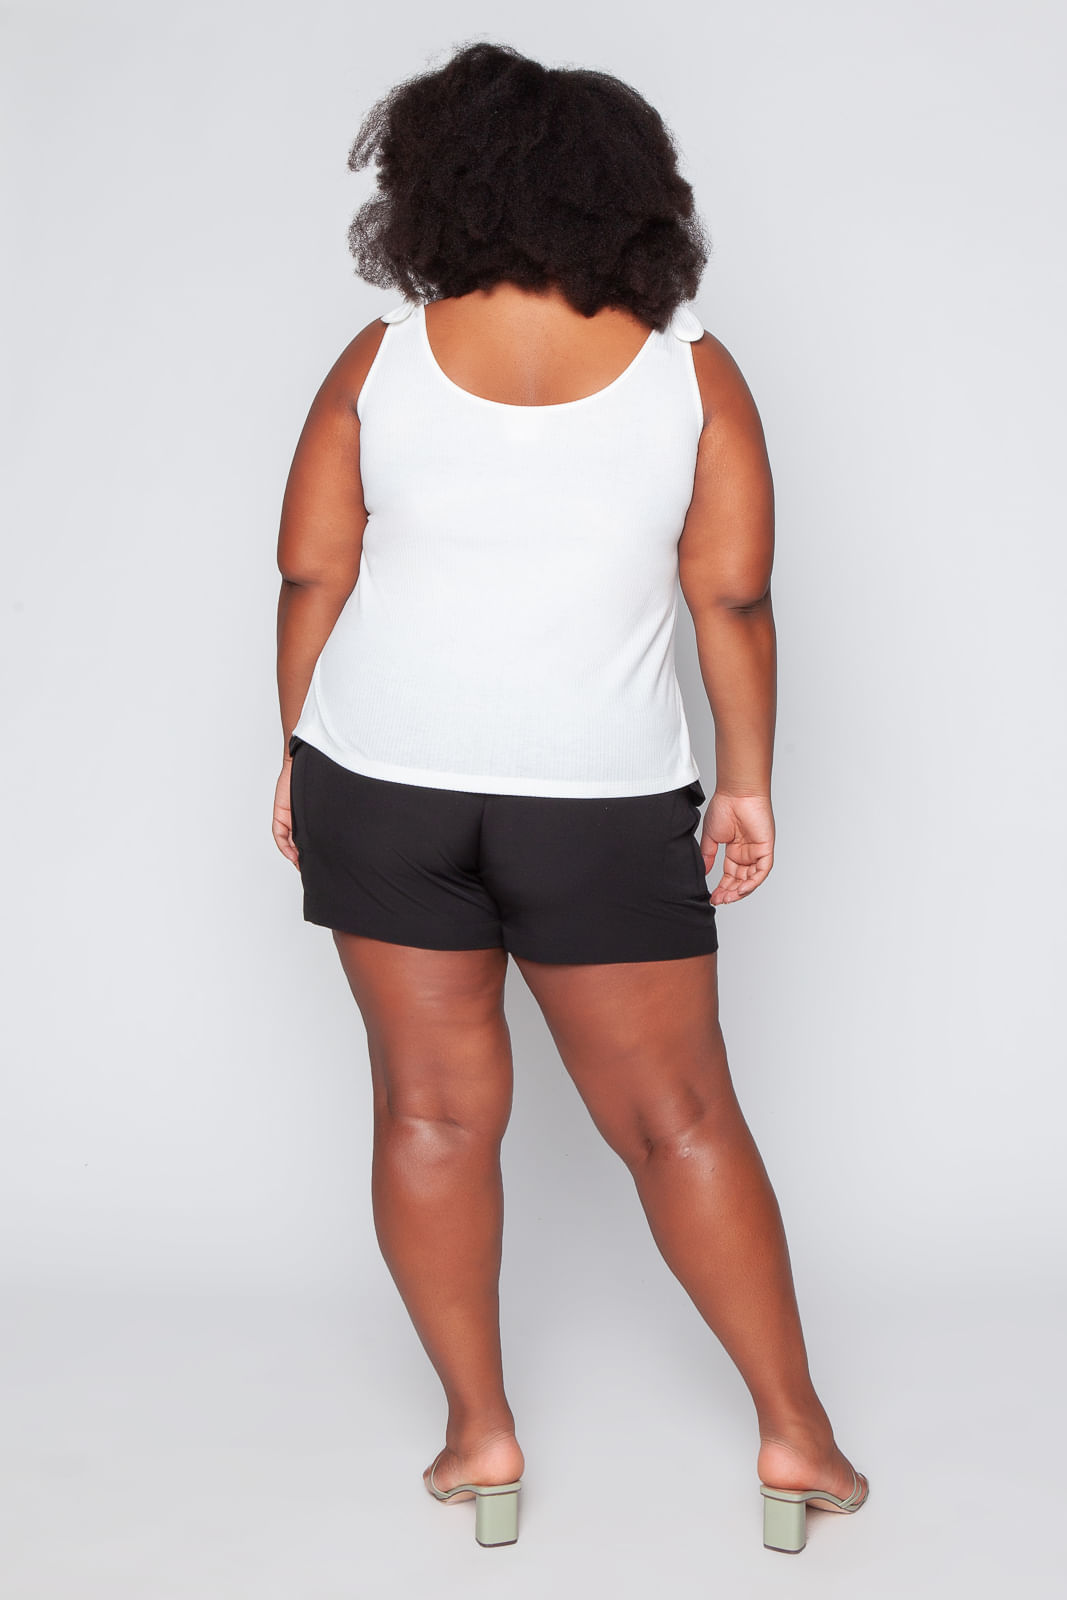 T047_Regata_Plus_Size_Justa_Canelada_com_No_Off_White_5